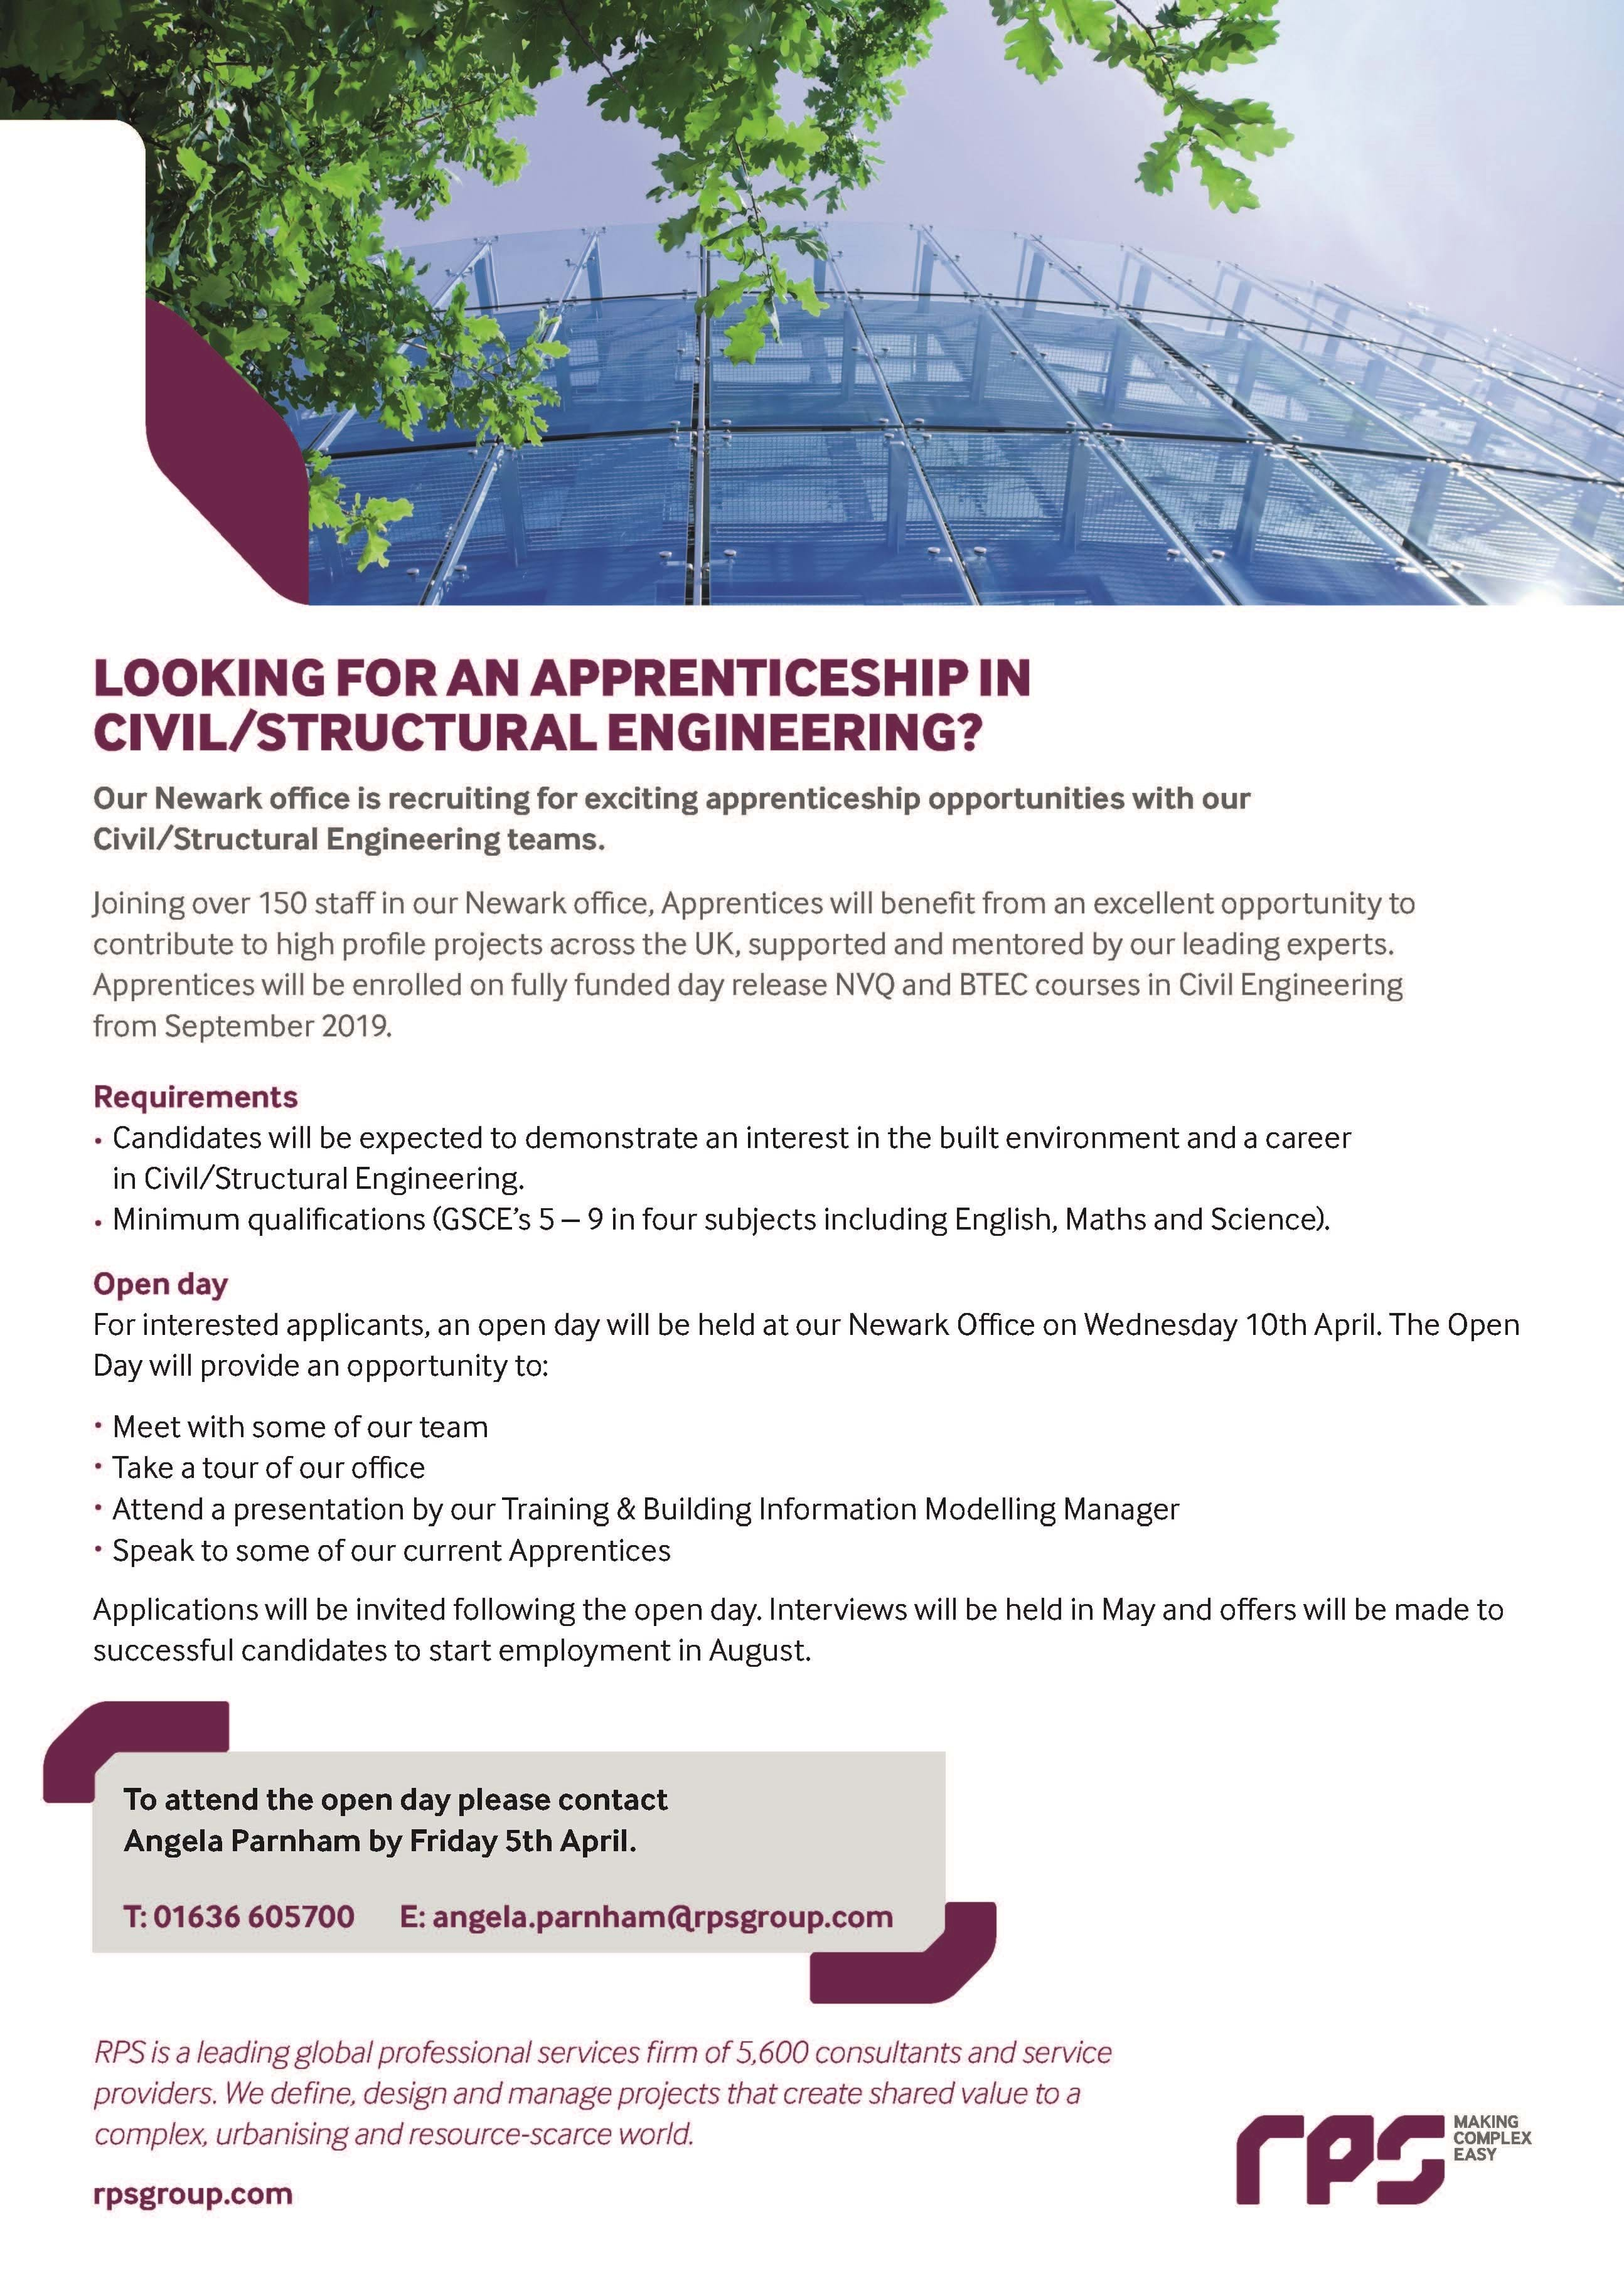 Come to our engineering apprenticeships open day | RPS